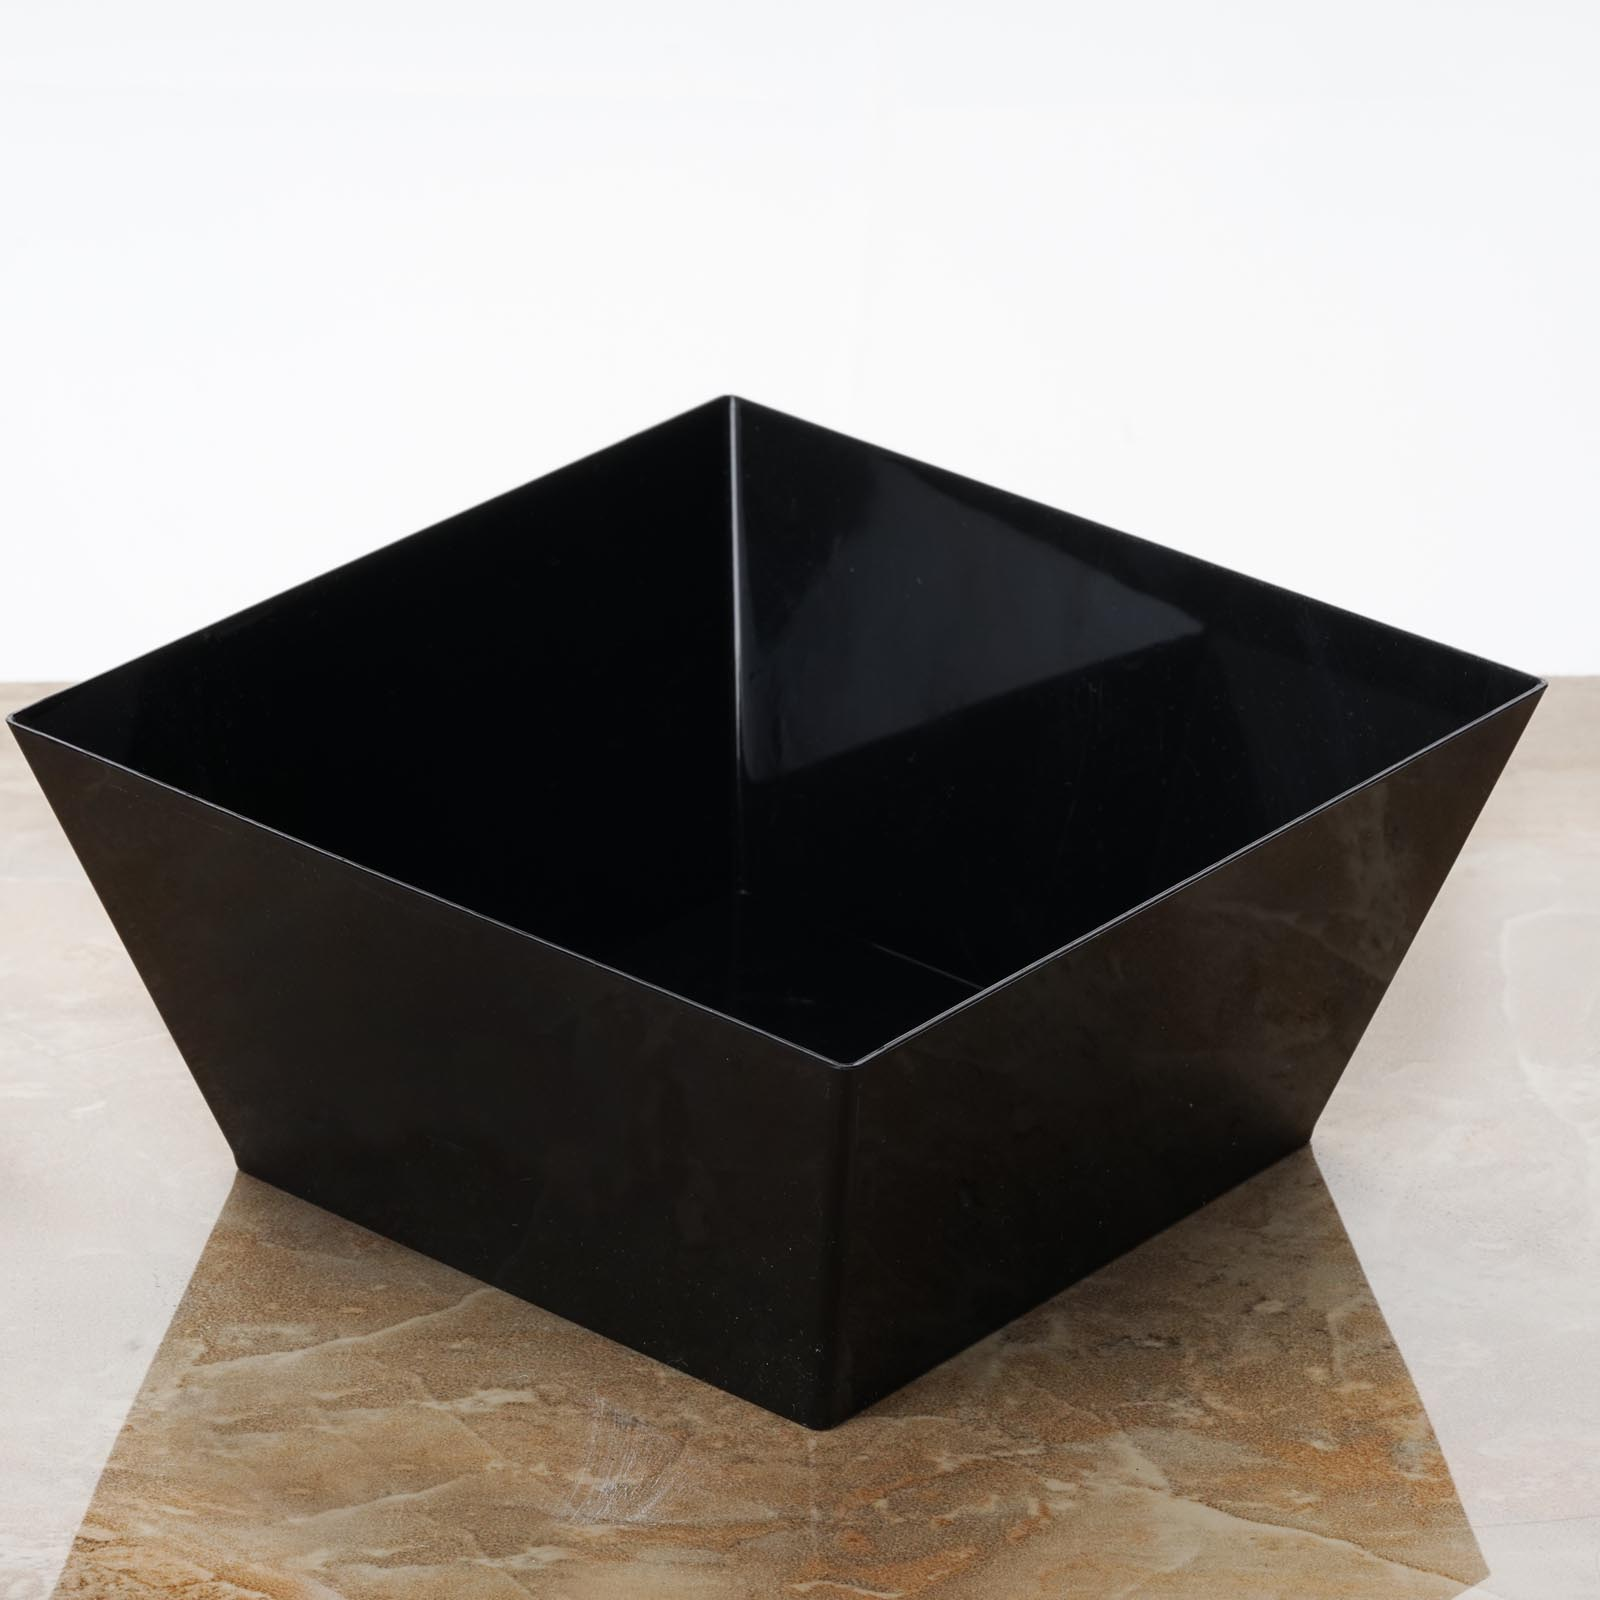 Efavormart 60 Pcs - Black Innovative Square Disposable Plastic Bowl